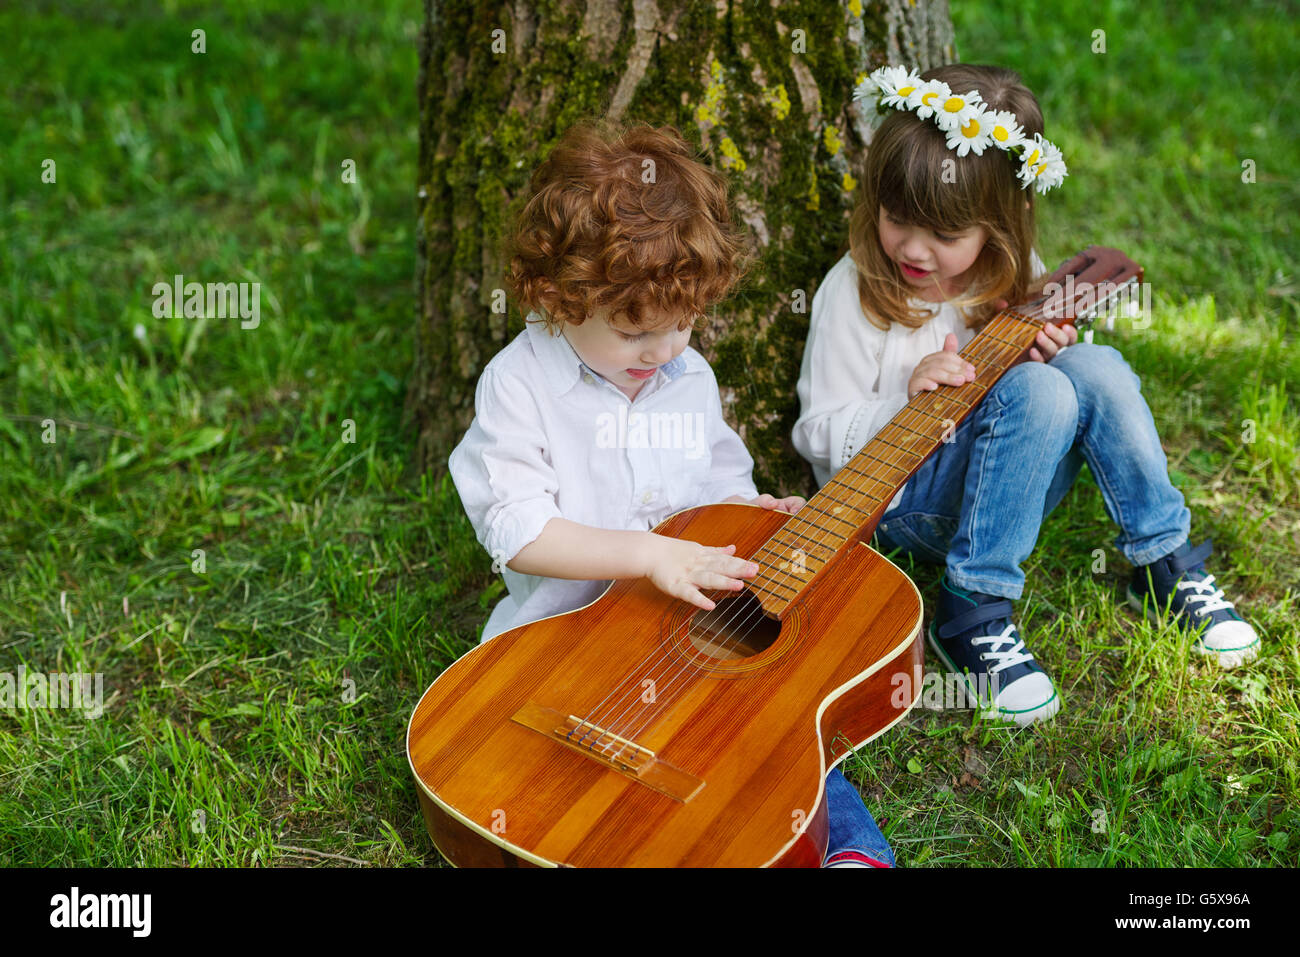 cute children playing guitar stock photo 106913474 alamy. Black Bedroom Furniture Sets. Home Design Ideas